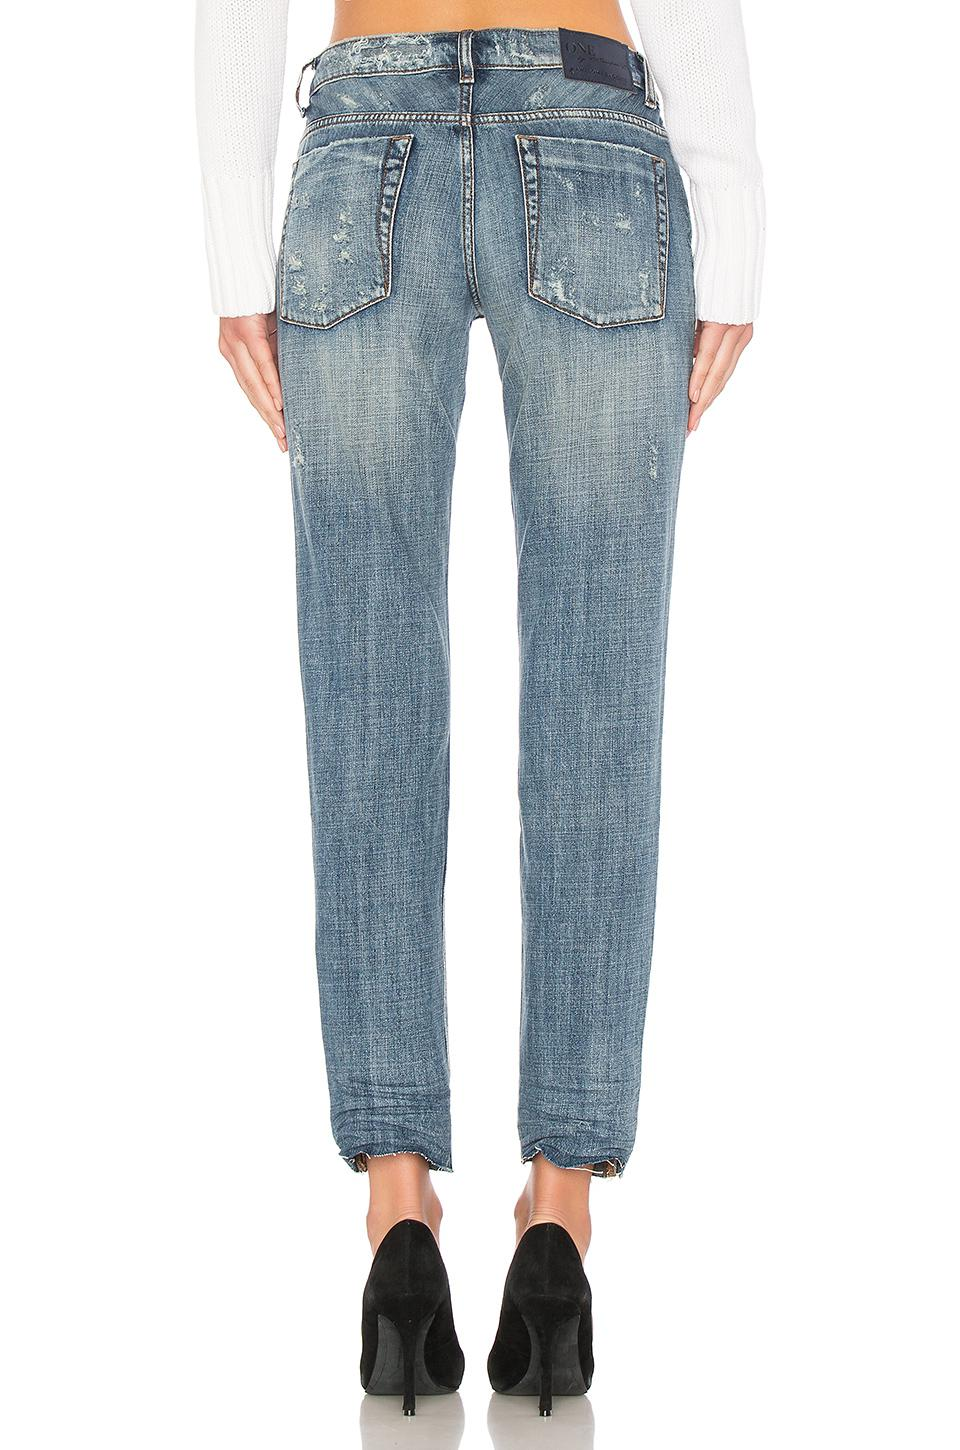 One Teaspoon Cotton Awesome Baggies Straight Leg Jean in Blue Suede (Blue)